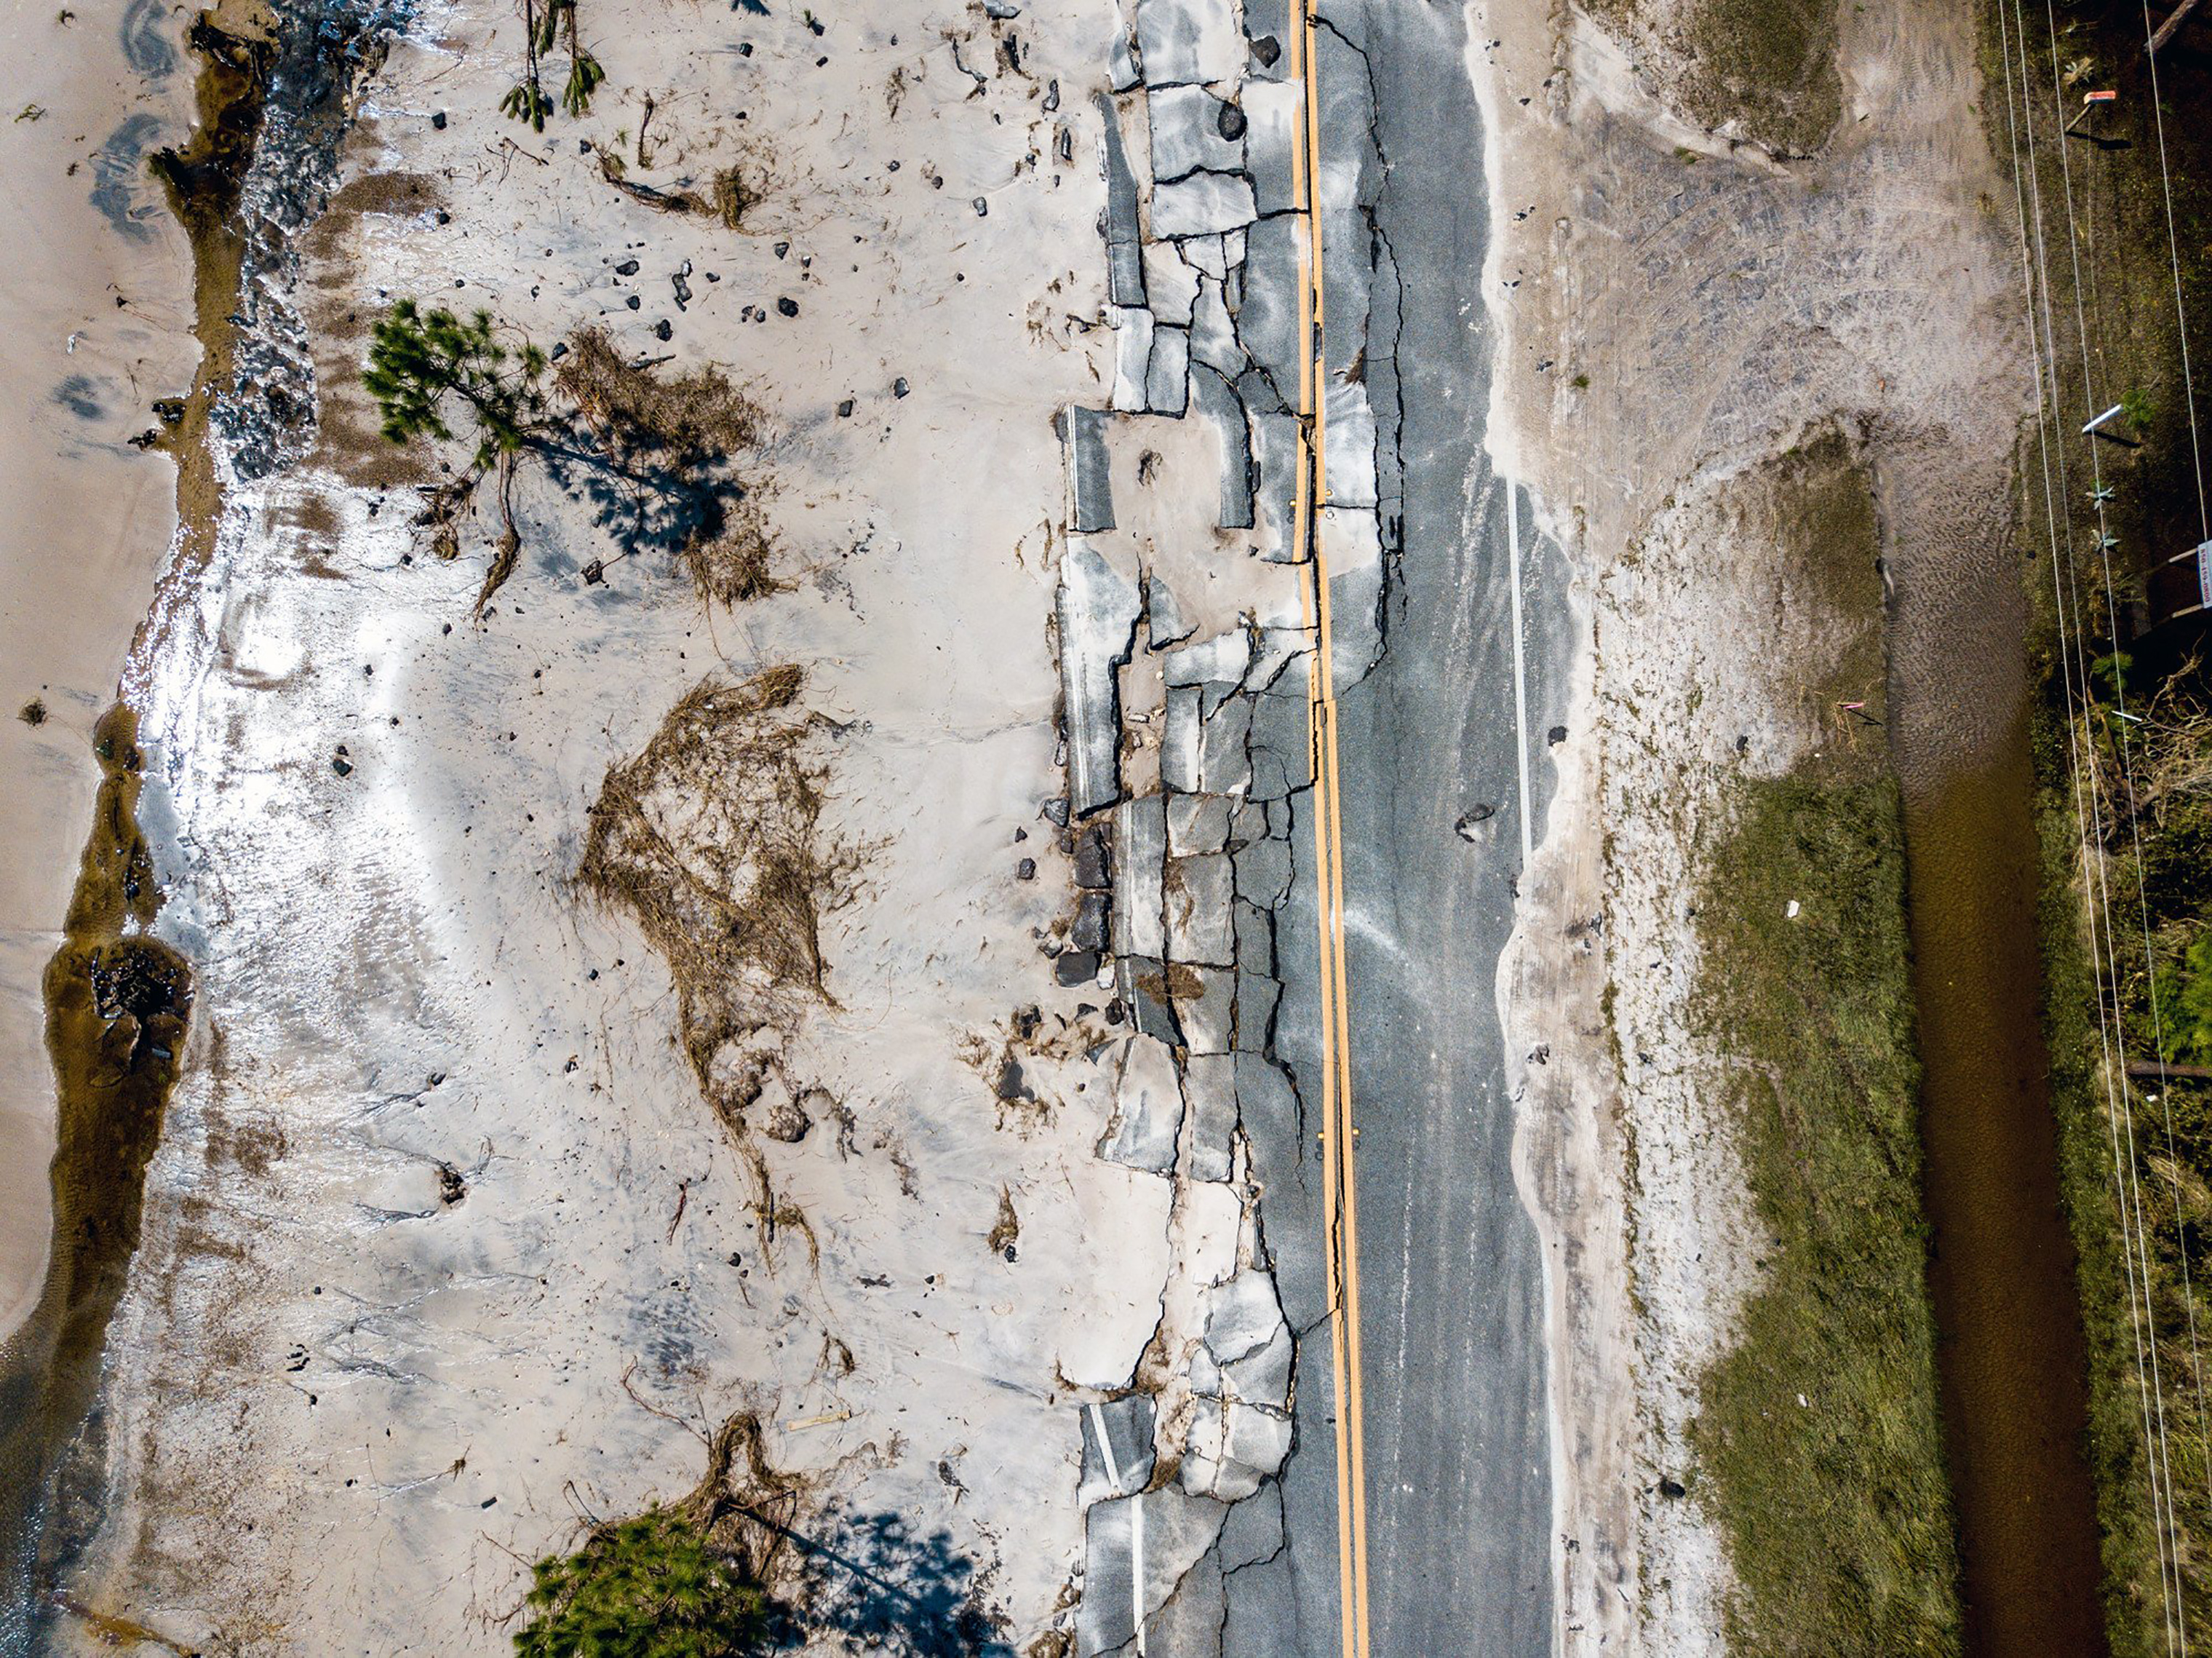 The power of Hurricane Michael's storm surge is evidenced by the damage done to State Road 98, which runs along the Gulf Coast in Carrabelle, Fla., on Oct. 11, 2018.